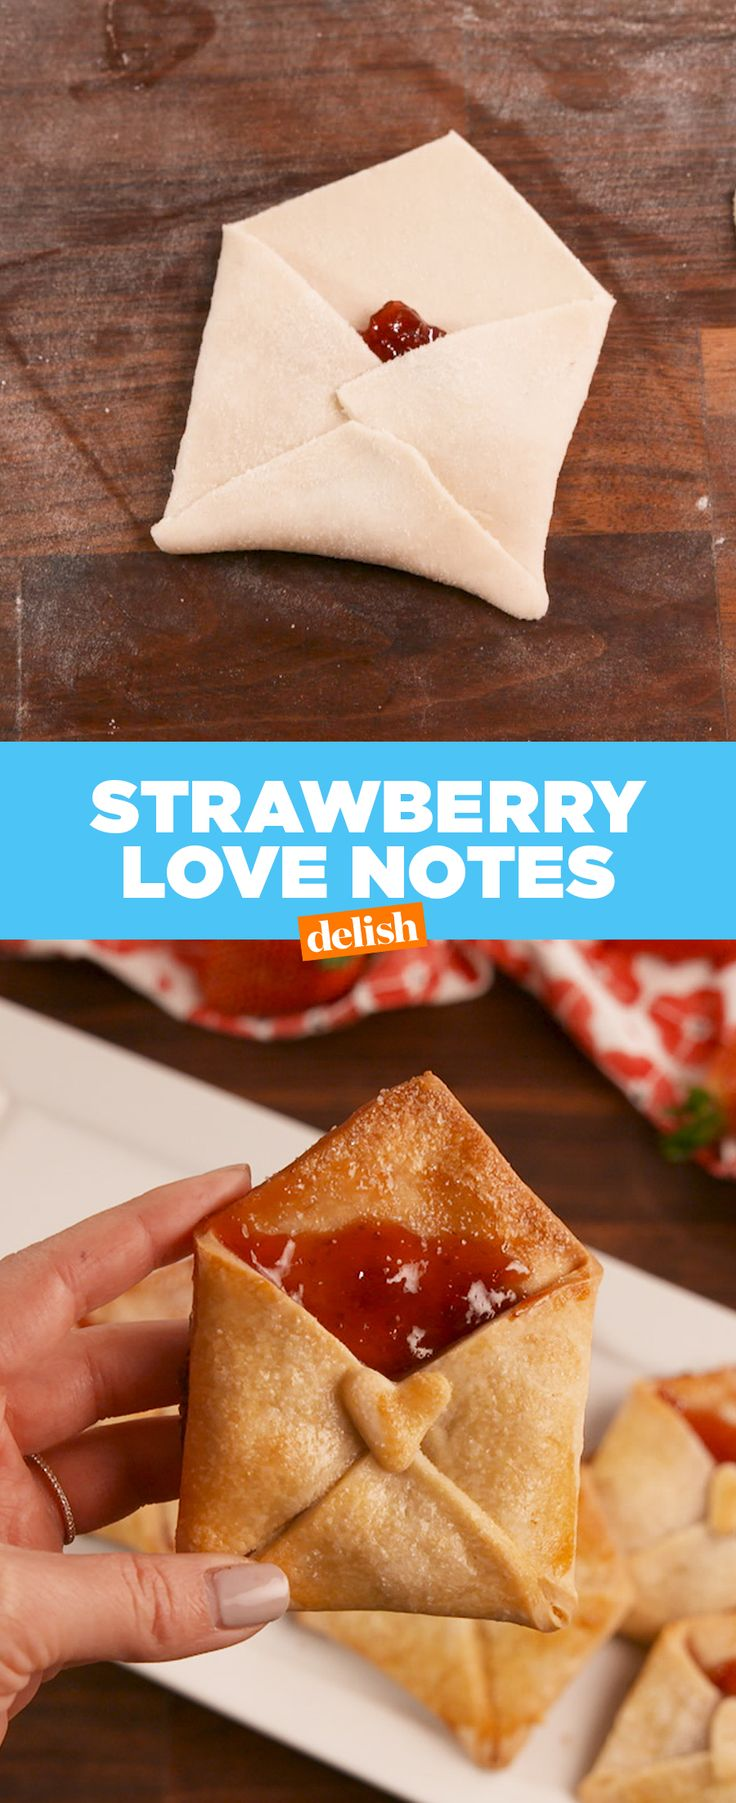 These Strawberry Love Notes are so much better than a Valentine's Day card. Get the recipe at Delish.com. #recipe #easyrecipe #valentinesday #valentine #valentinesdaygiftideas #valentinecraft #strawberry #pie #crust #dessert #holiday #jam